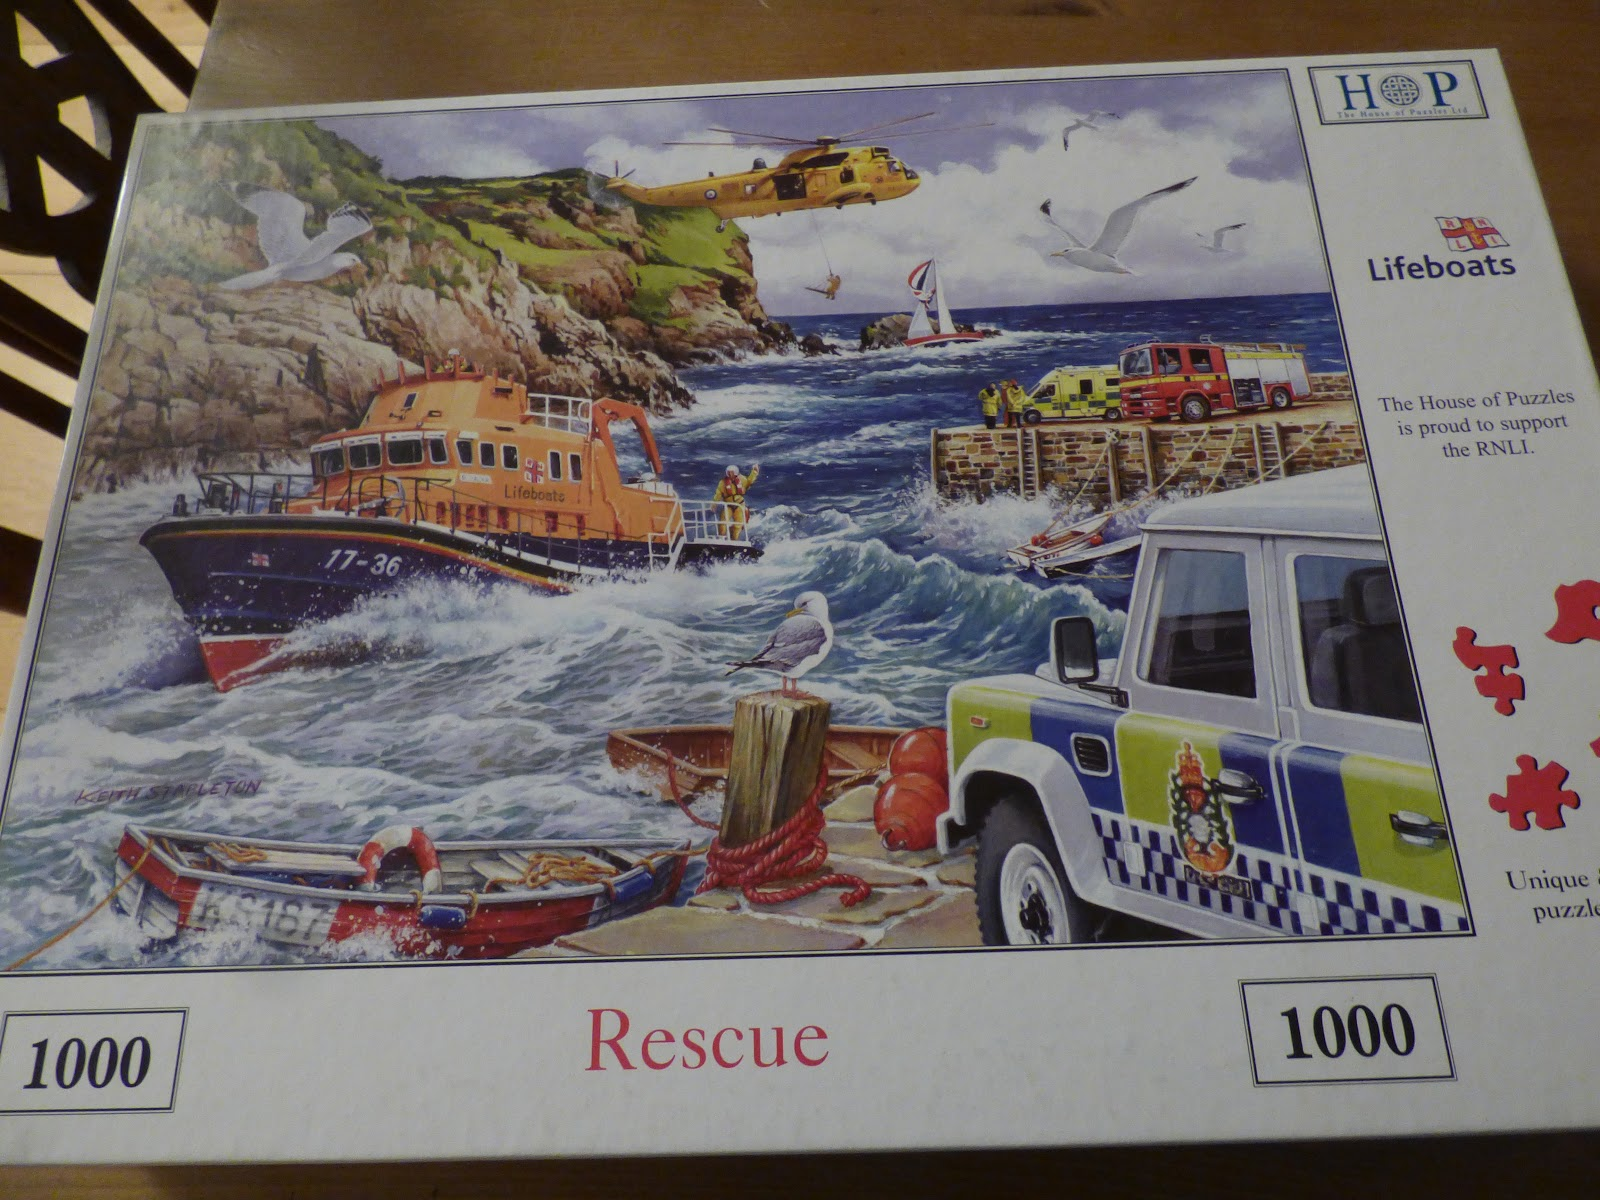 Rescue RNLI Lifeboats 1000 PIECE JIGSAW PUZZLE The House Of Puzzles